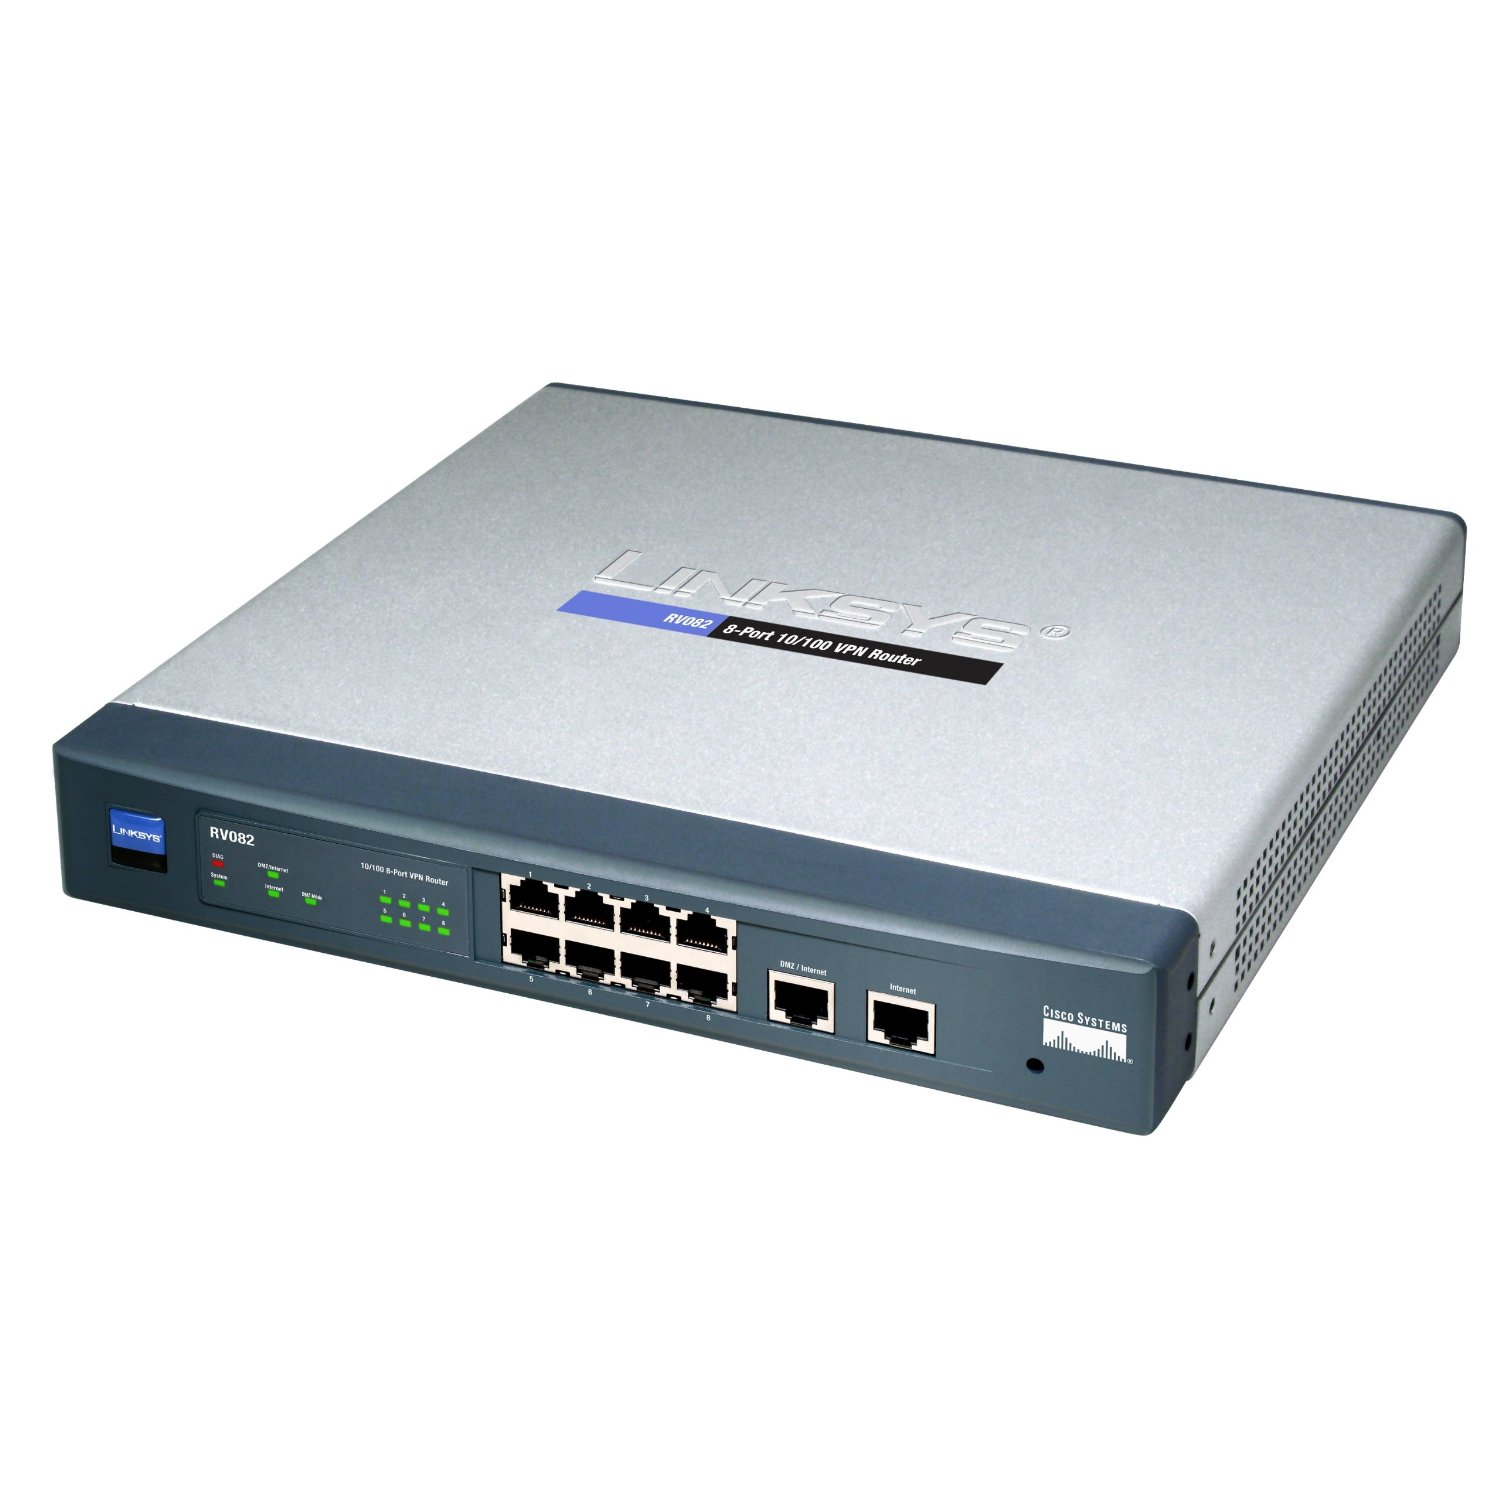 Роутер Cisco RV082-EU Фото 1 из 1